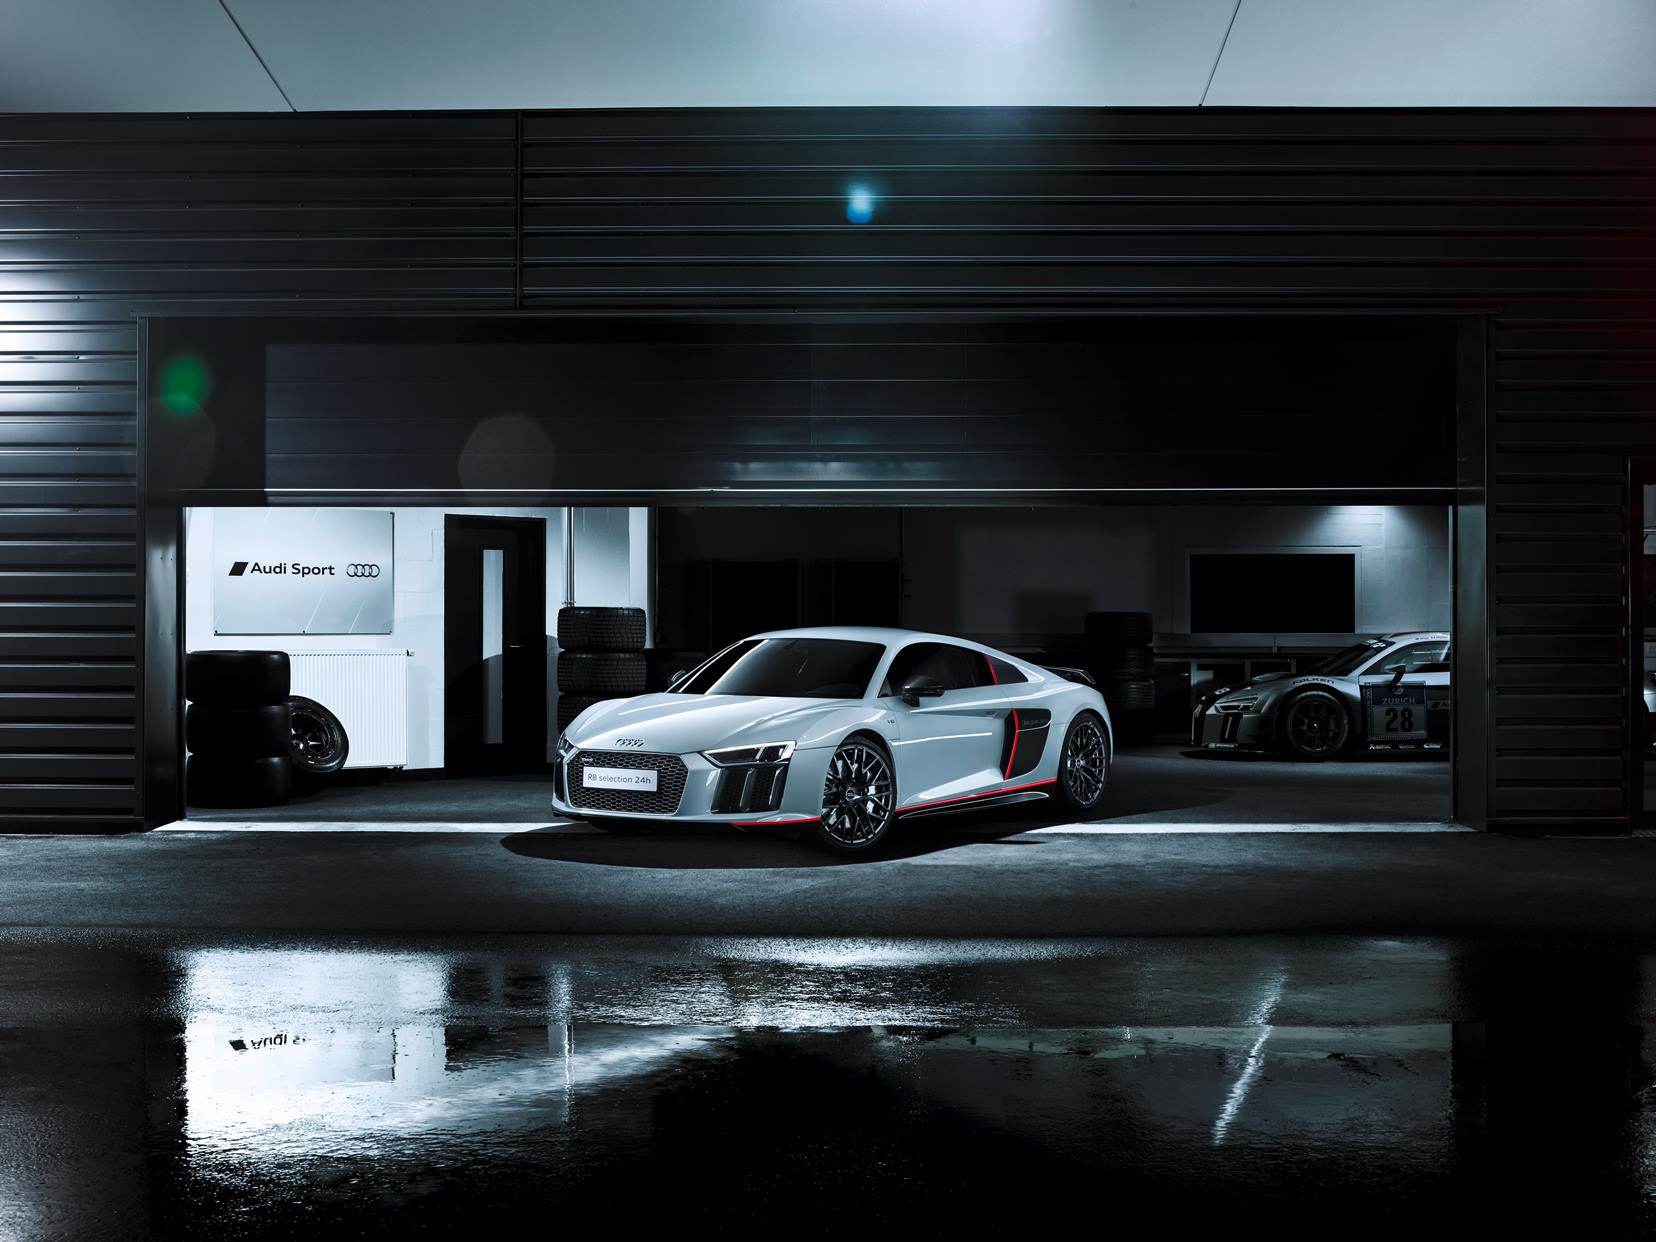 Audi R8 V10 selection 24h - 2016 - front - photo showroom